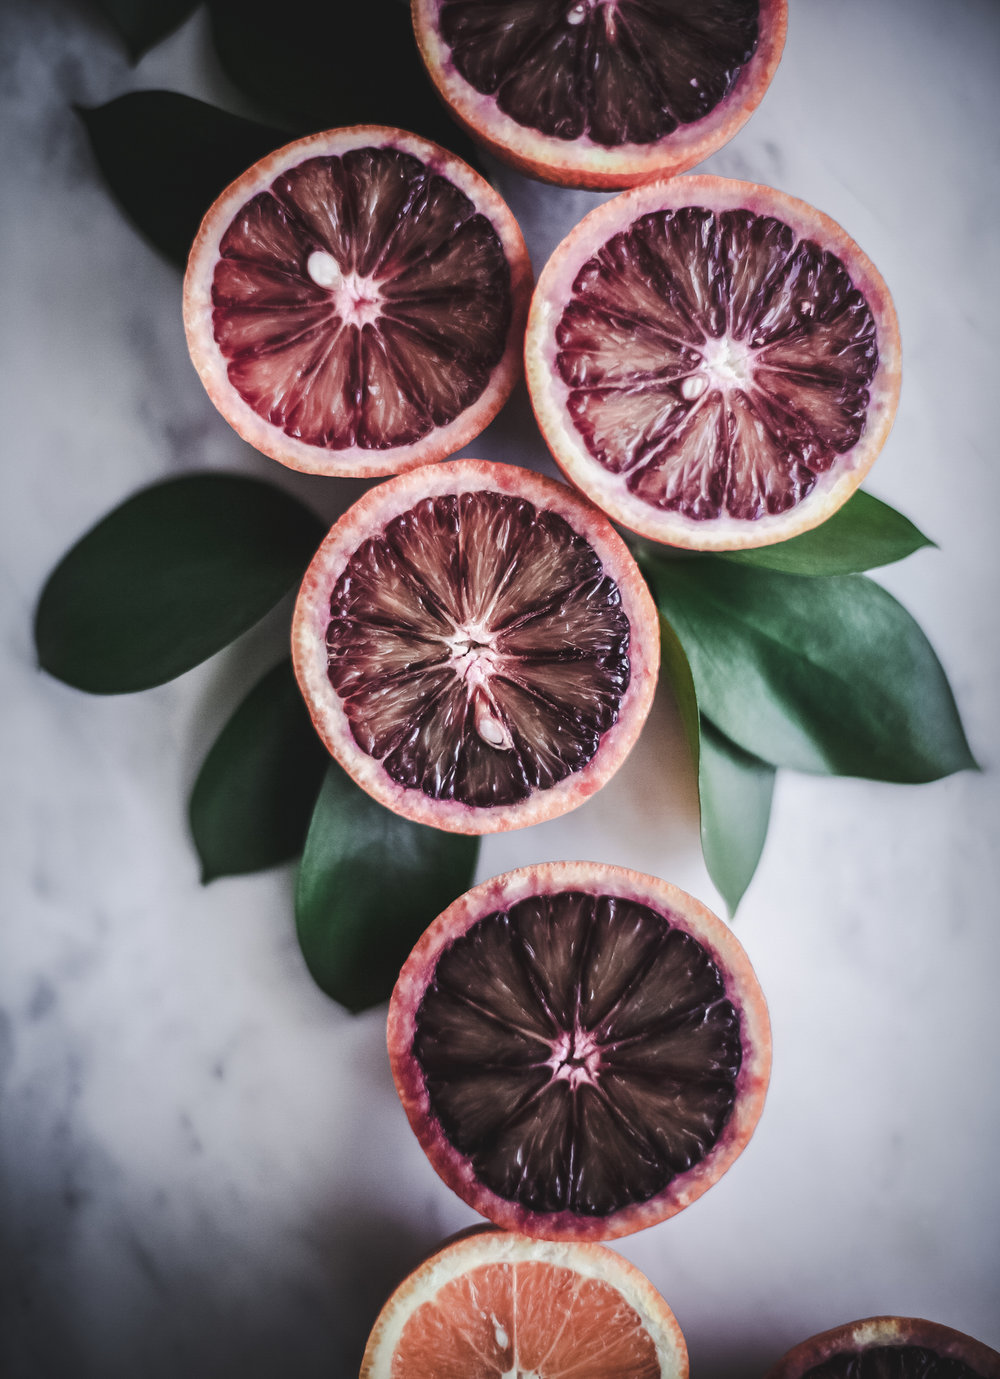 paleo pink tarts with blood oranges _ www.salvialimone.com